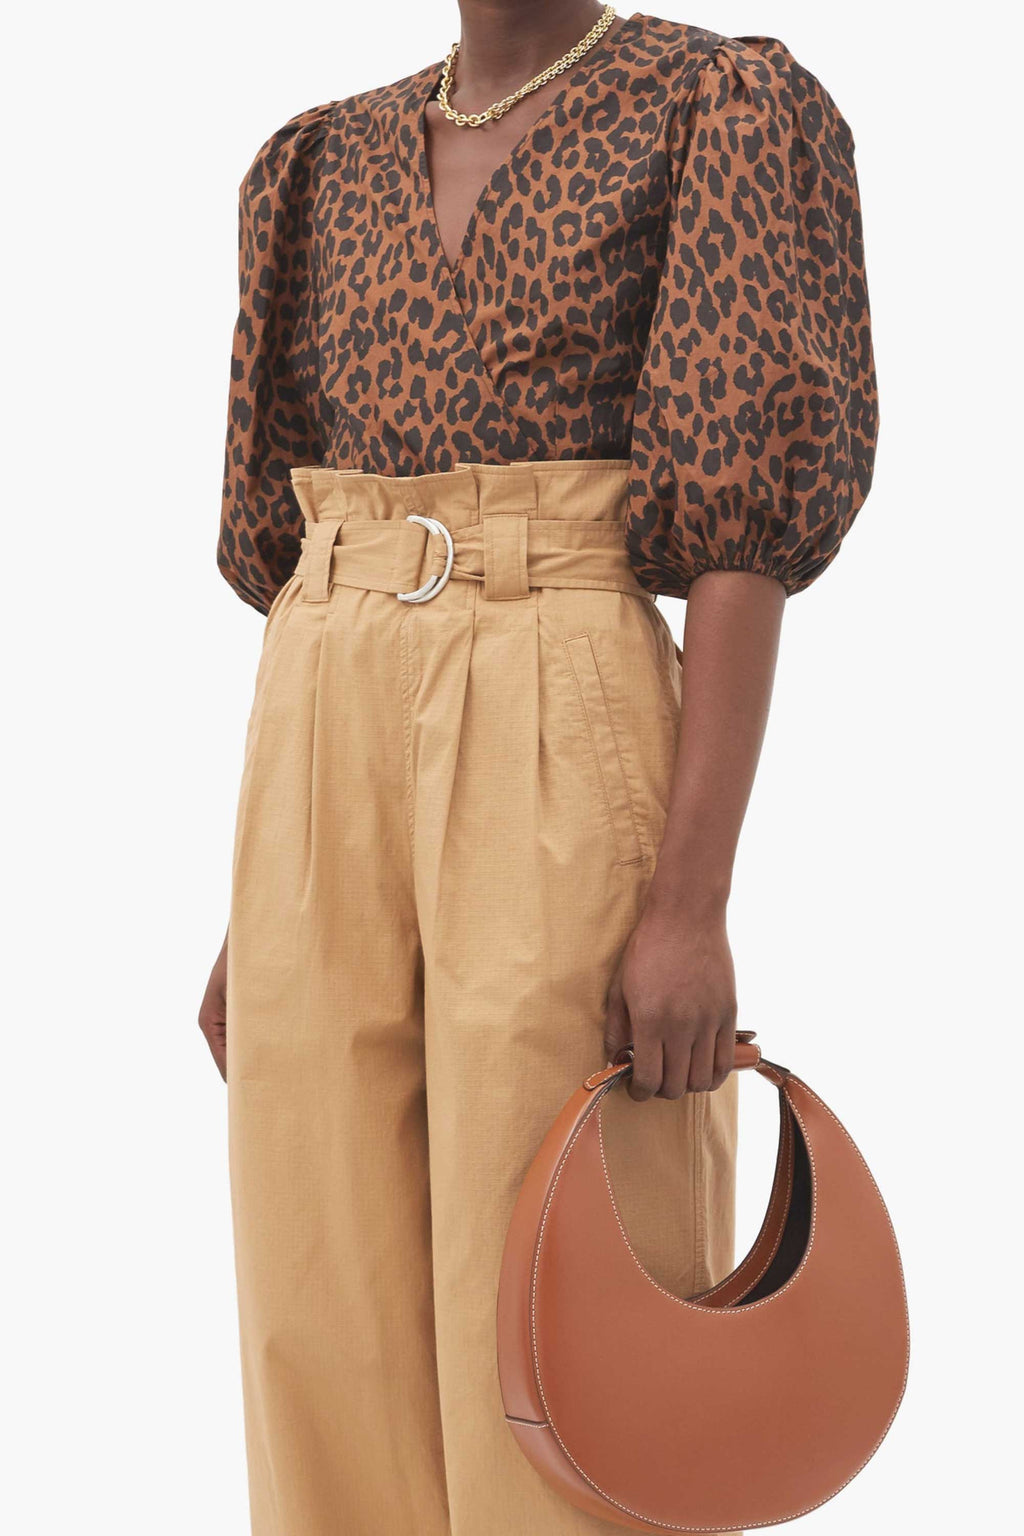 PUFF SLEEVE WRAP BLOUSE - TOFFEE LEOPARD